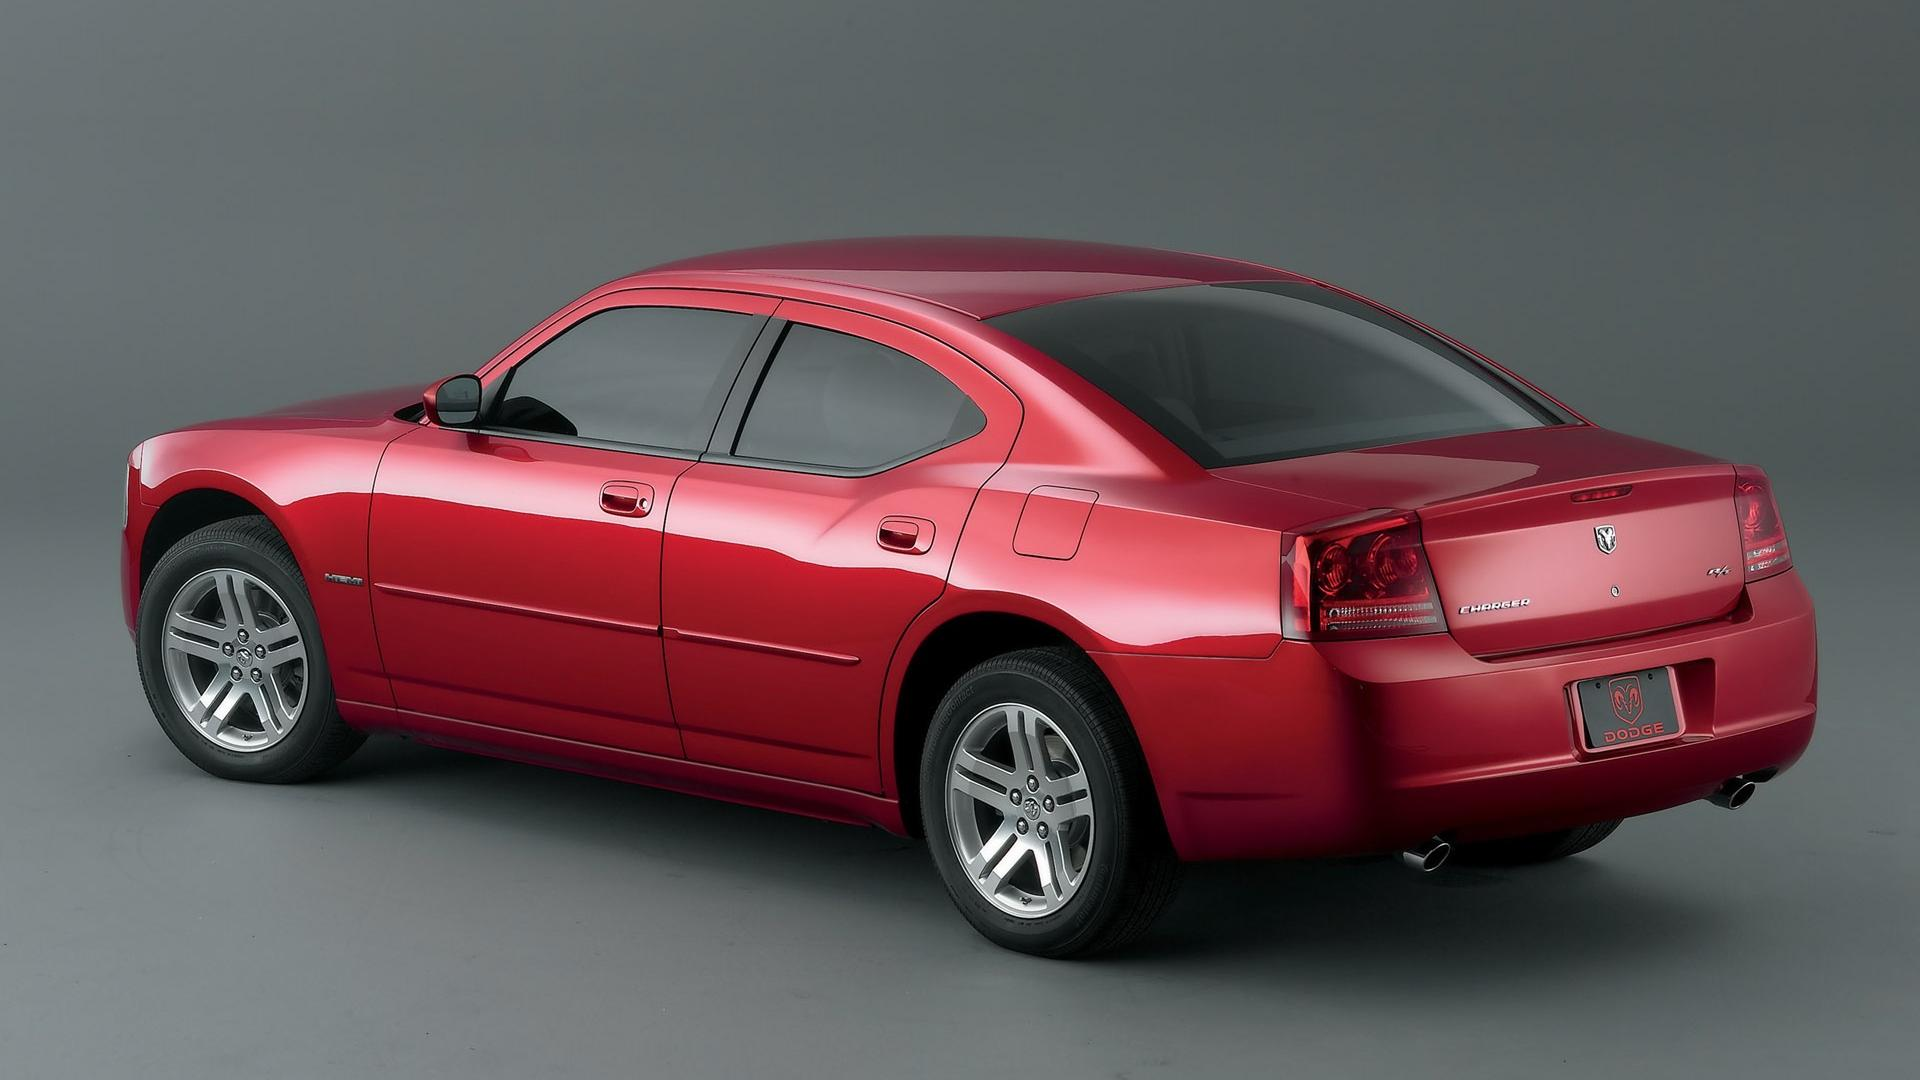 2006 Dodge Charger Rt Racer 1920x1080